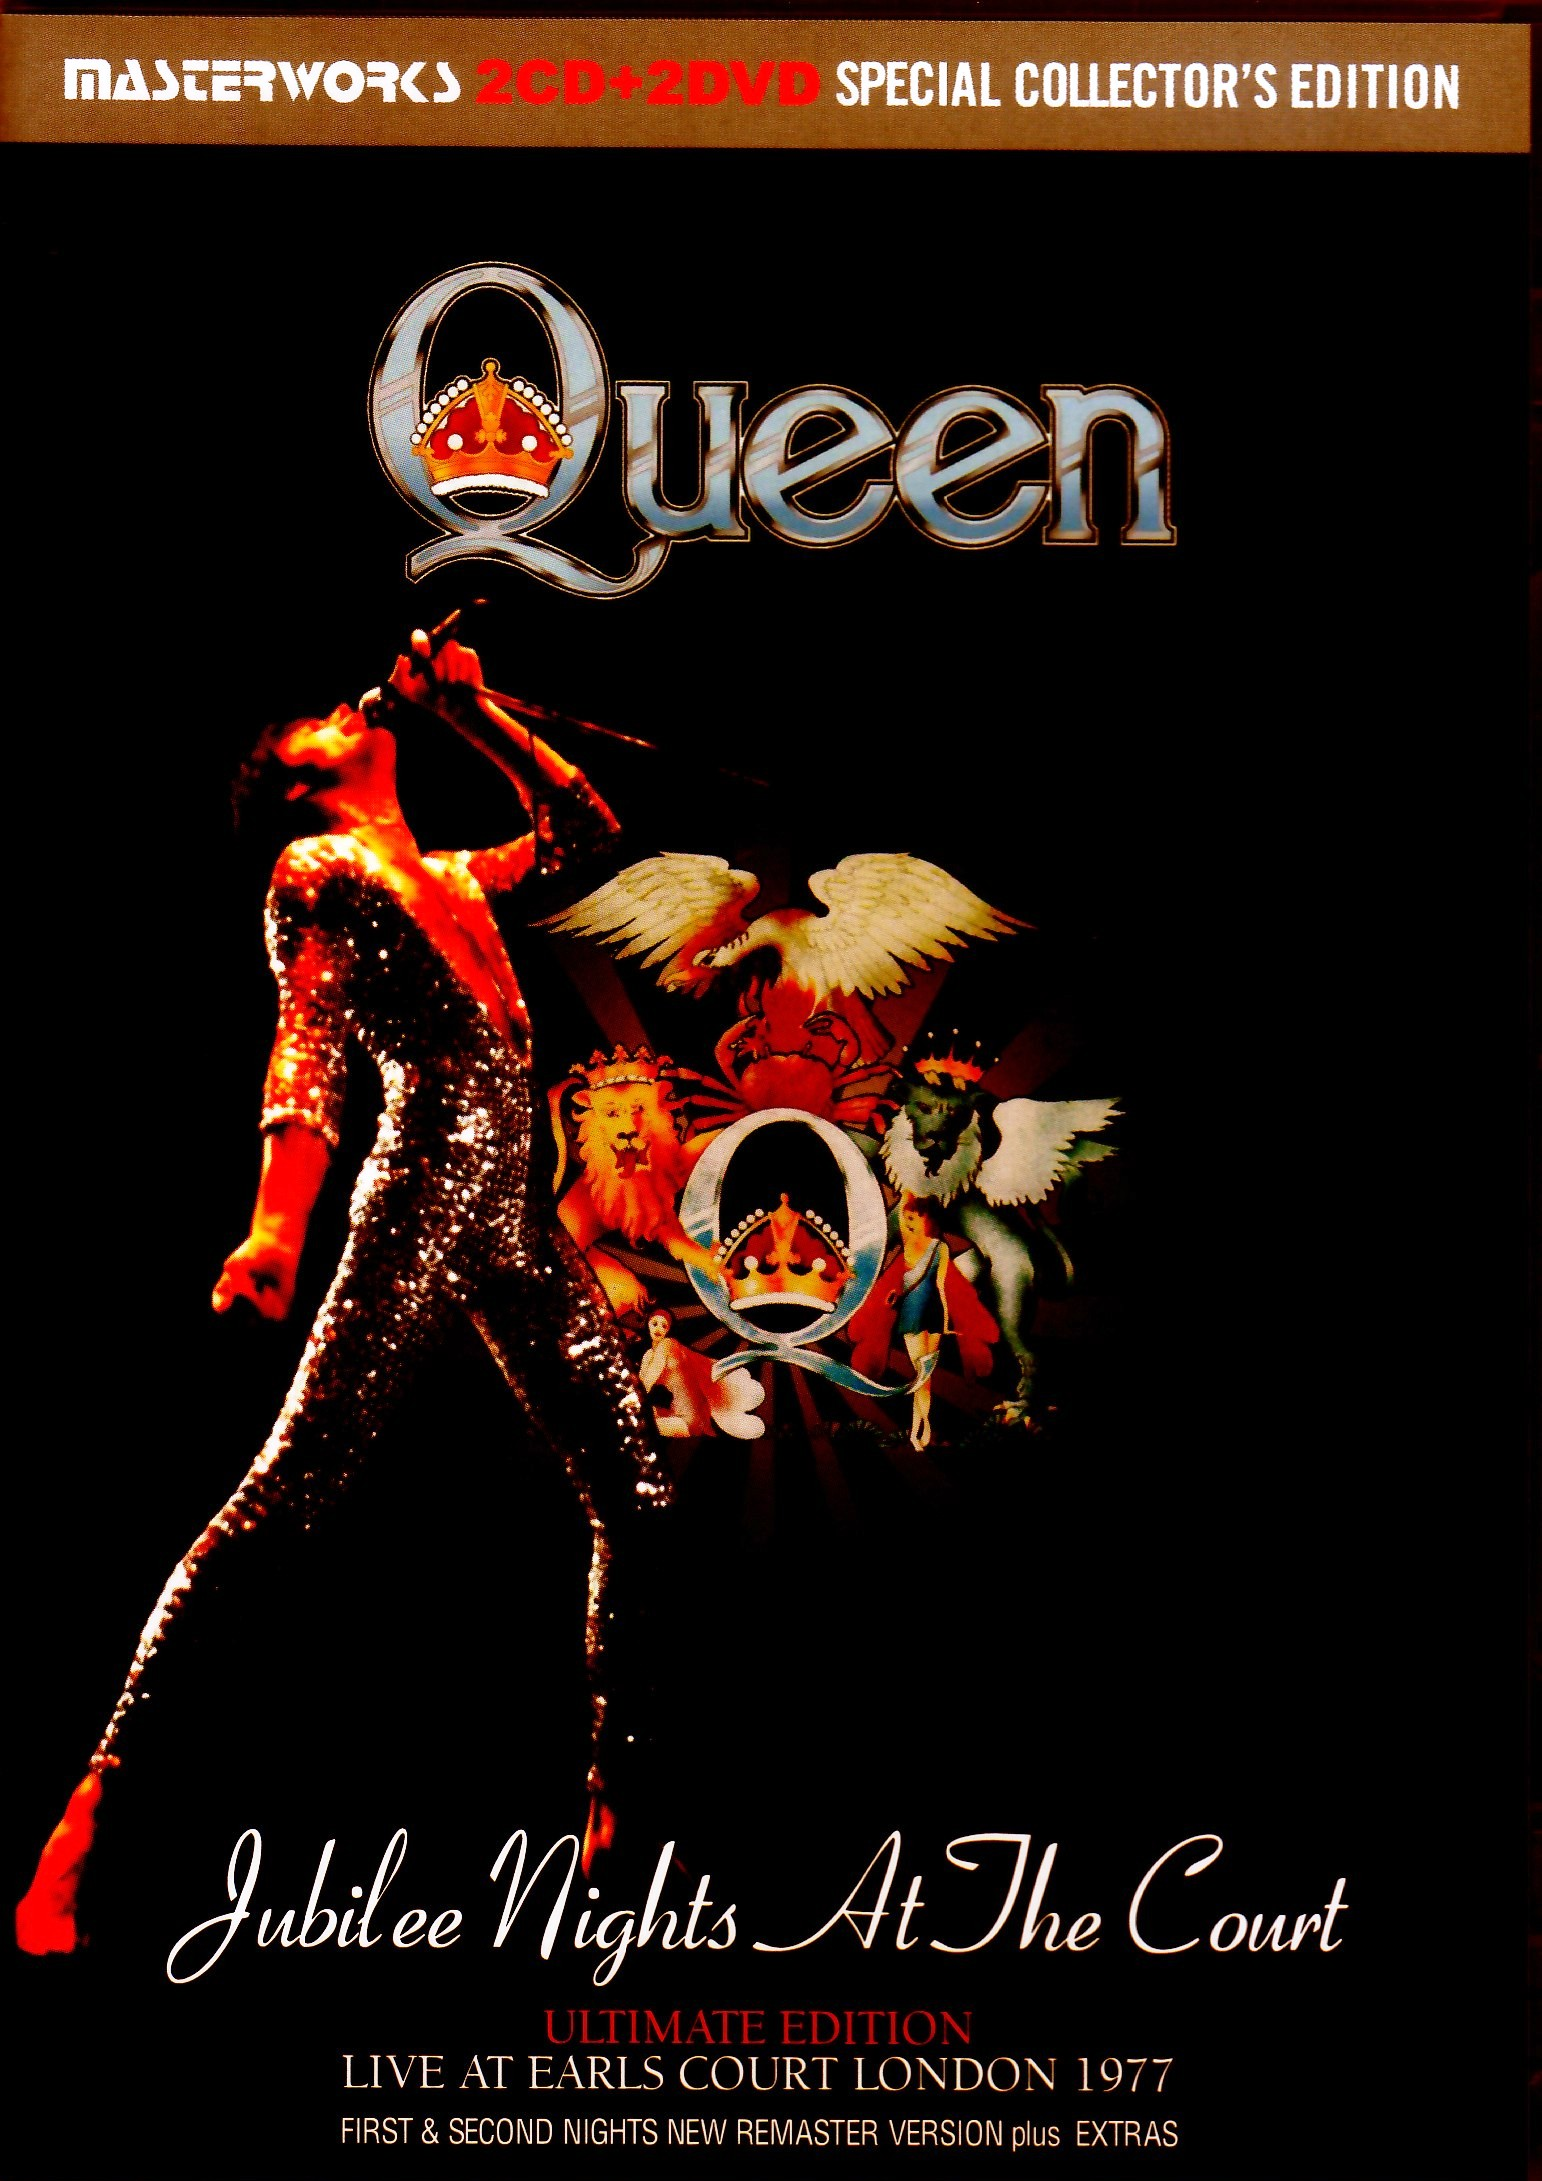 Queen クィーン/London,UK 1977First & Second Nights New Remaster Ver. & Extras